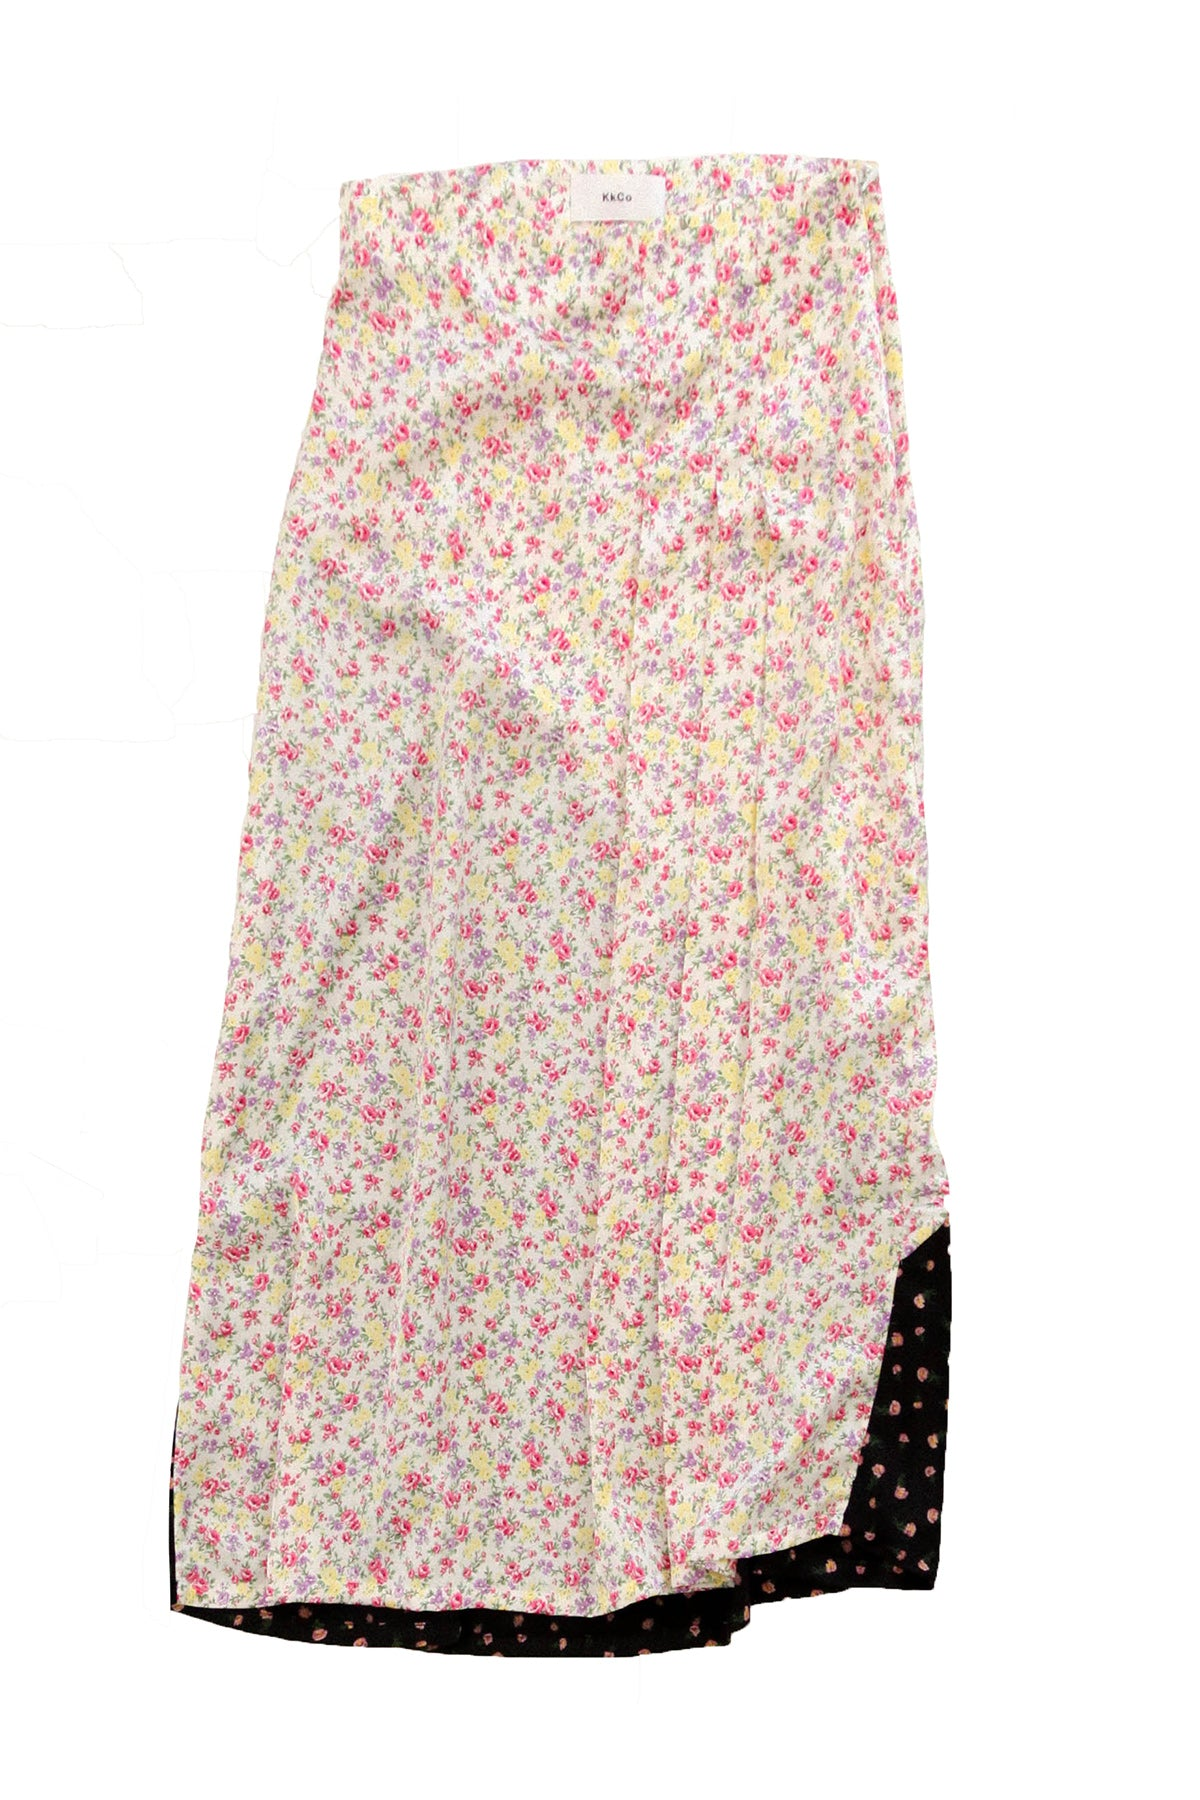 Poppy Skirt in Ditzy Floral